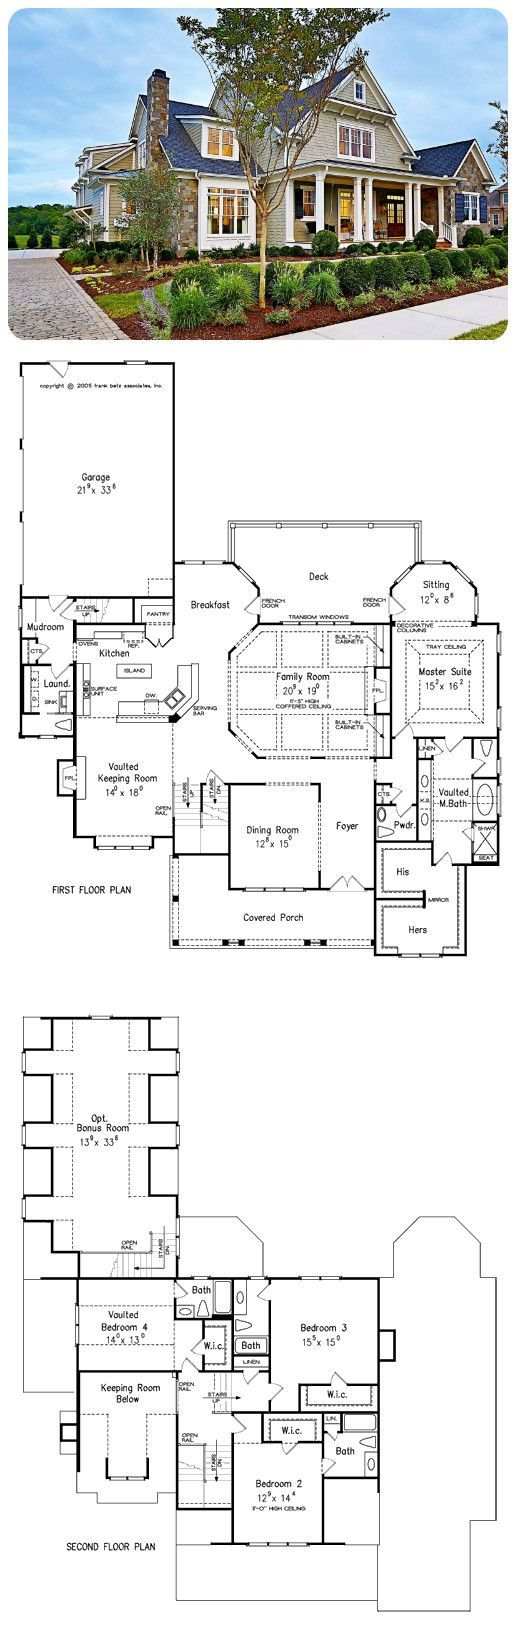 93 best Home designs images on Pinterest | Exterior homes, Home ...